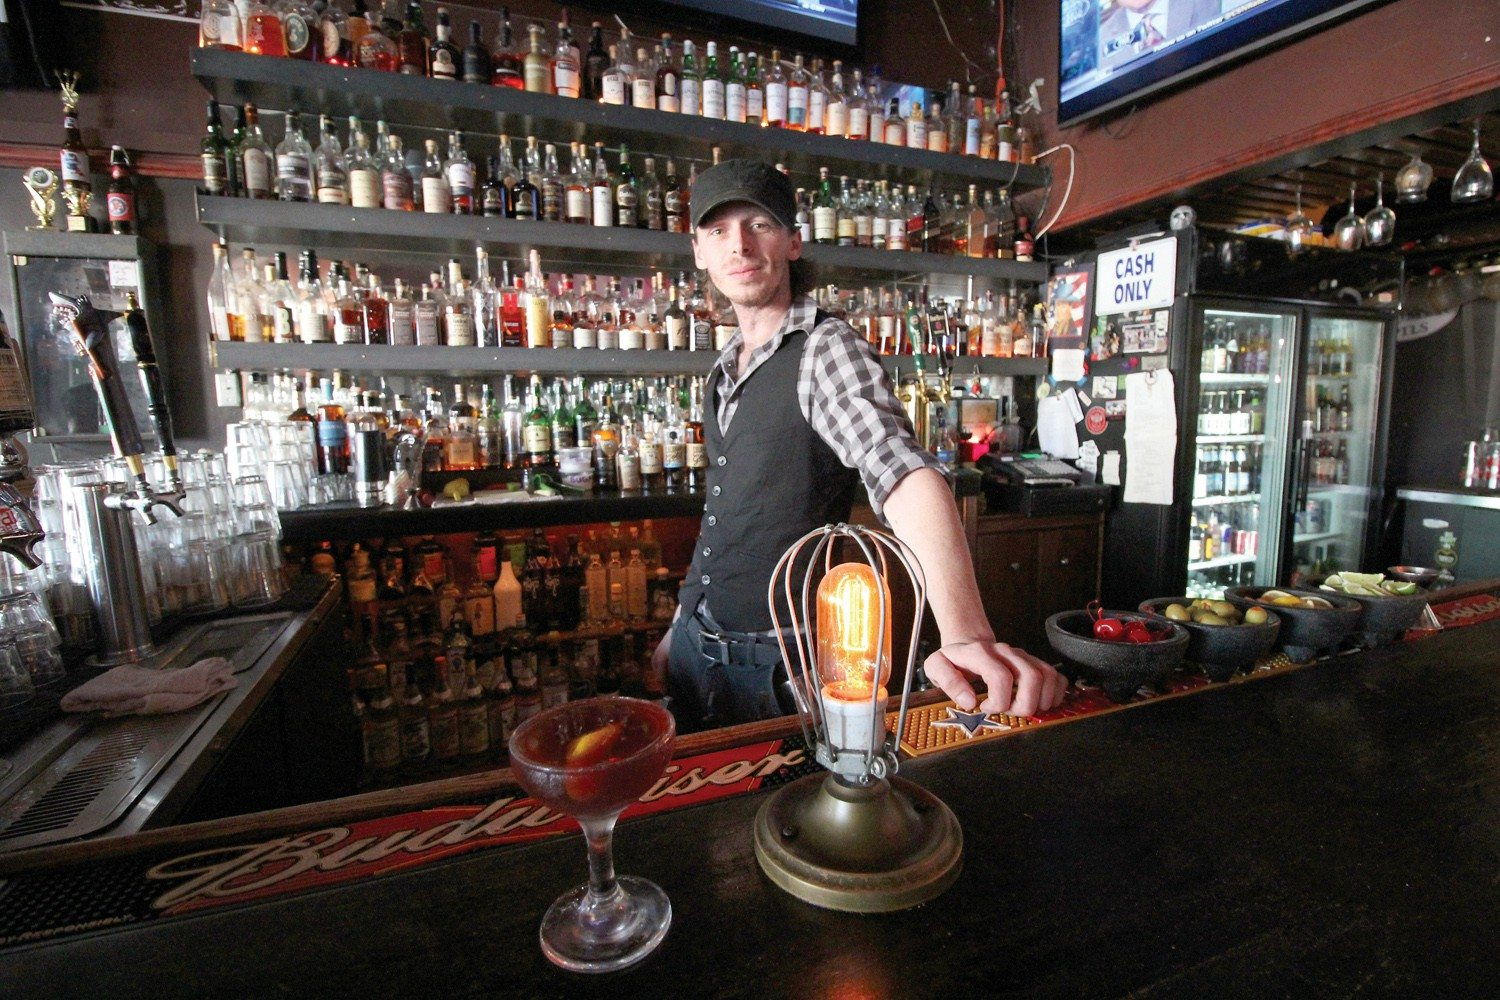 Erica Marquez/Special to the S.F. examinerBroken Record bartender Brett Davis can help you pick out a top shot of whiskey